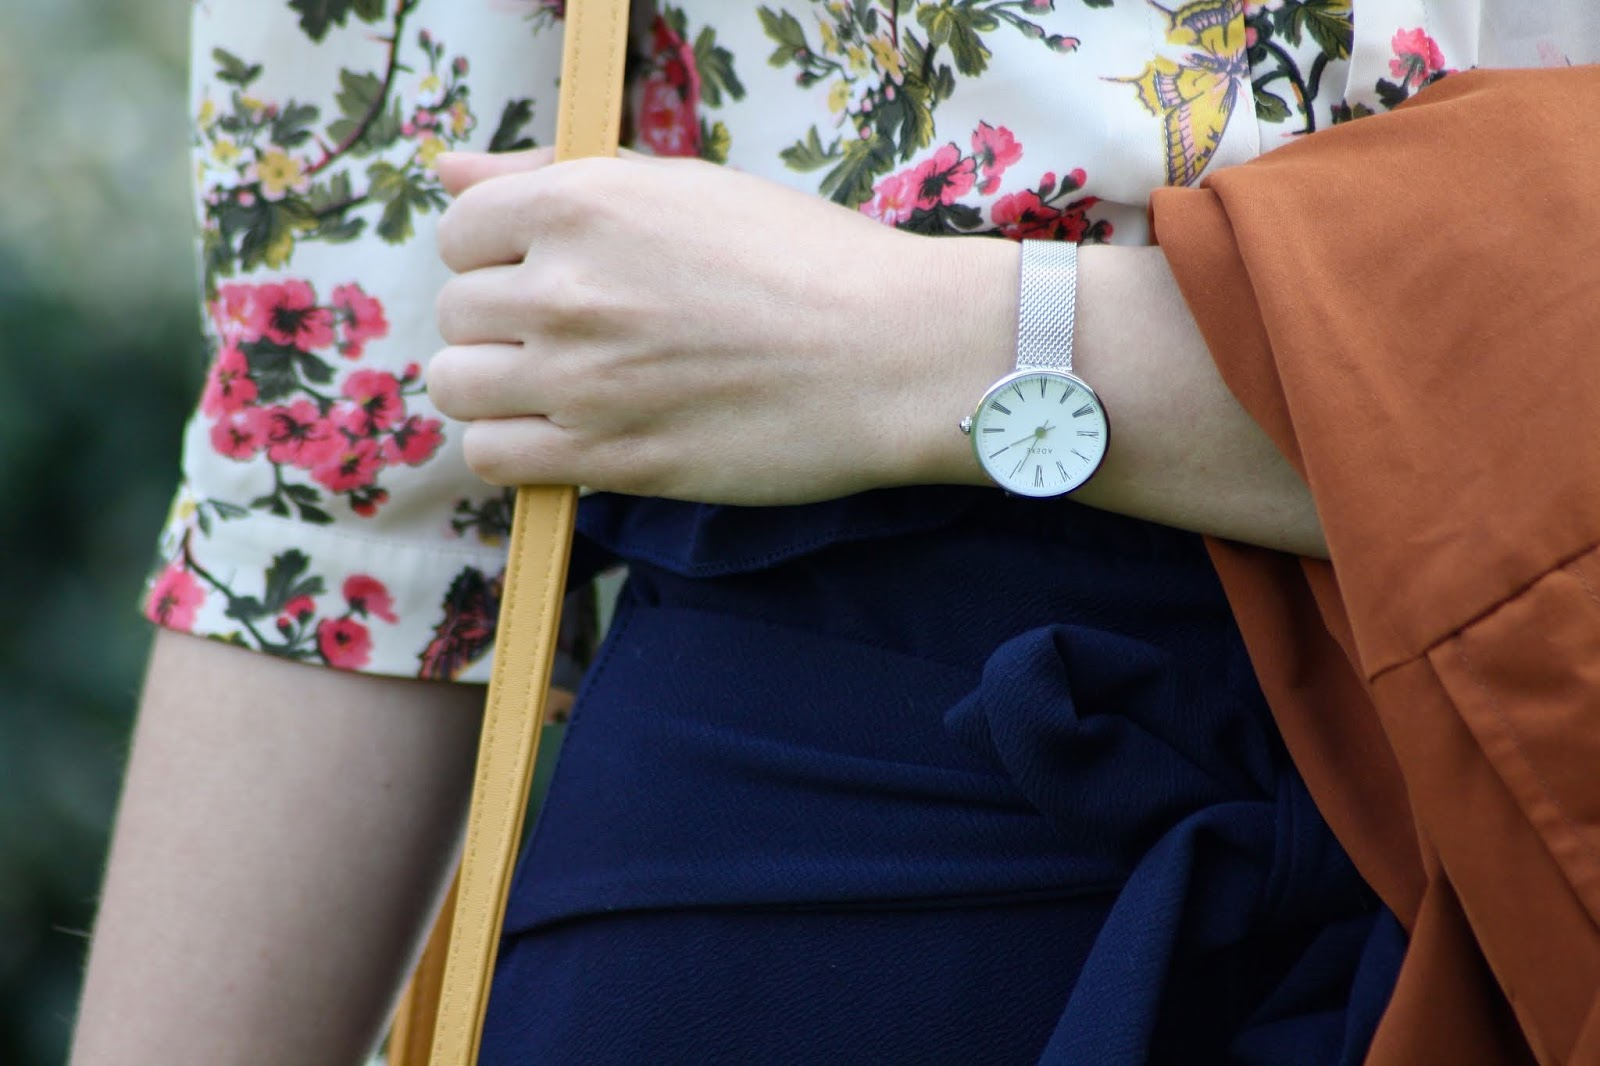 A close up taken at waist level, showing Abbey's floral top, blue trousers, tan coat, and silver watch